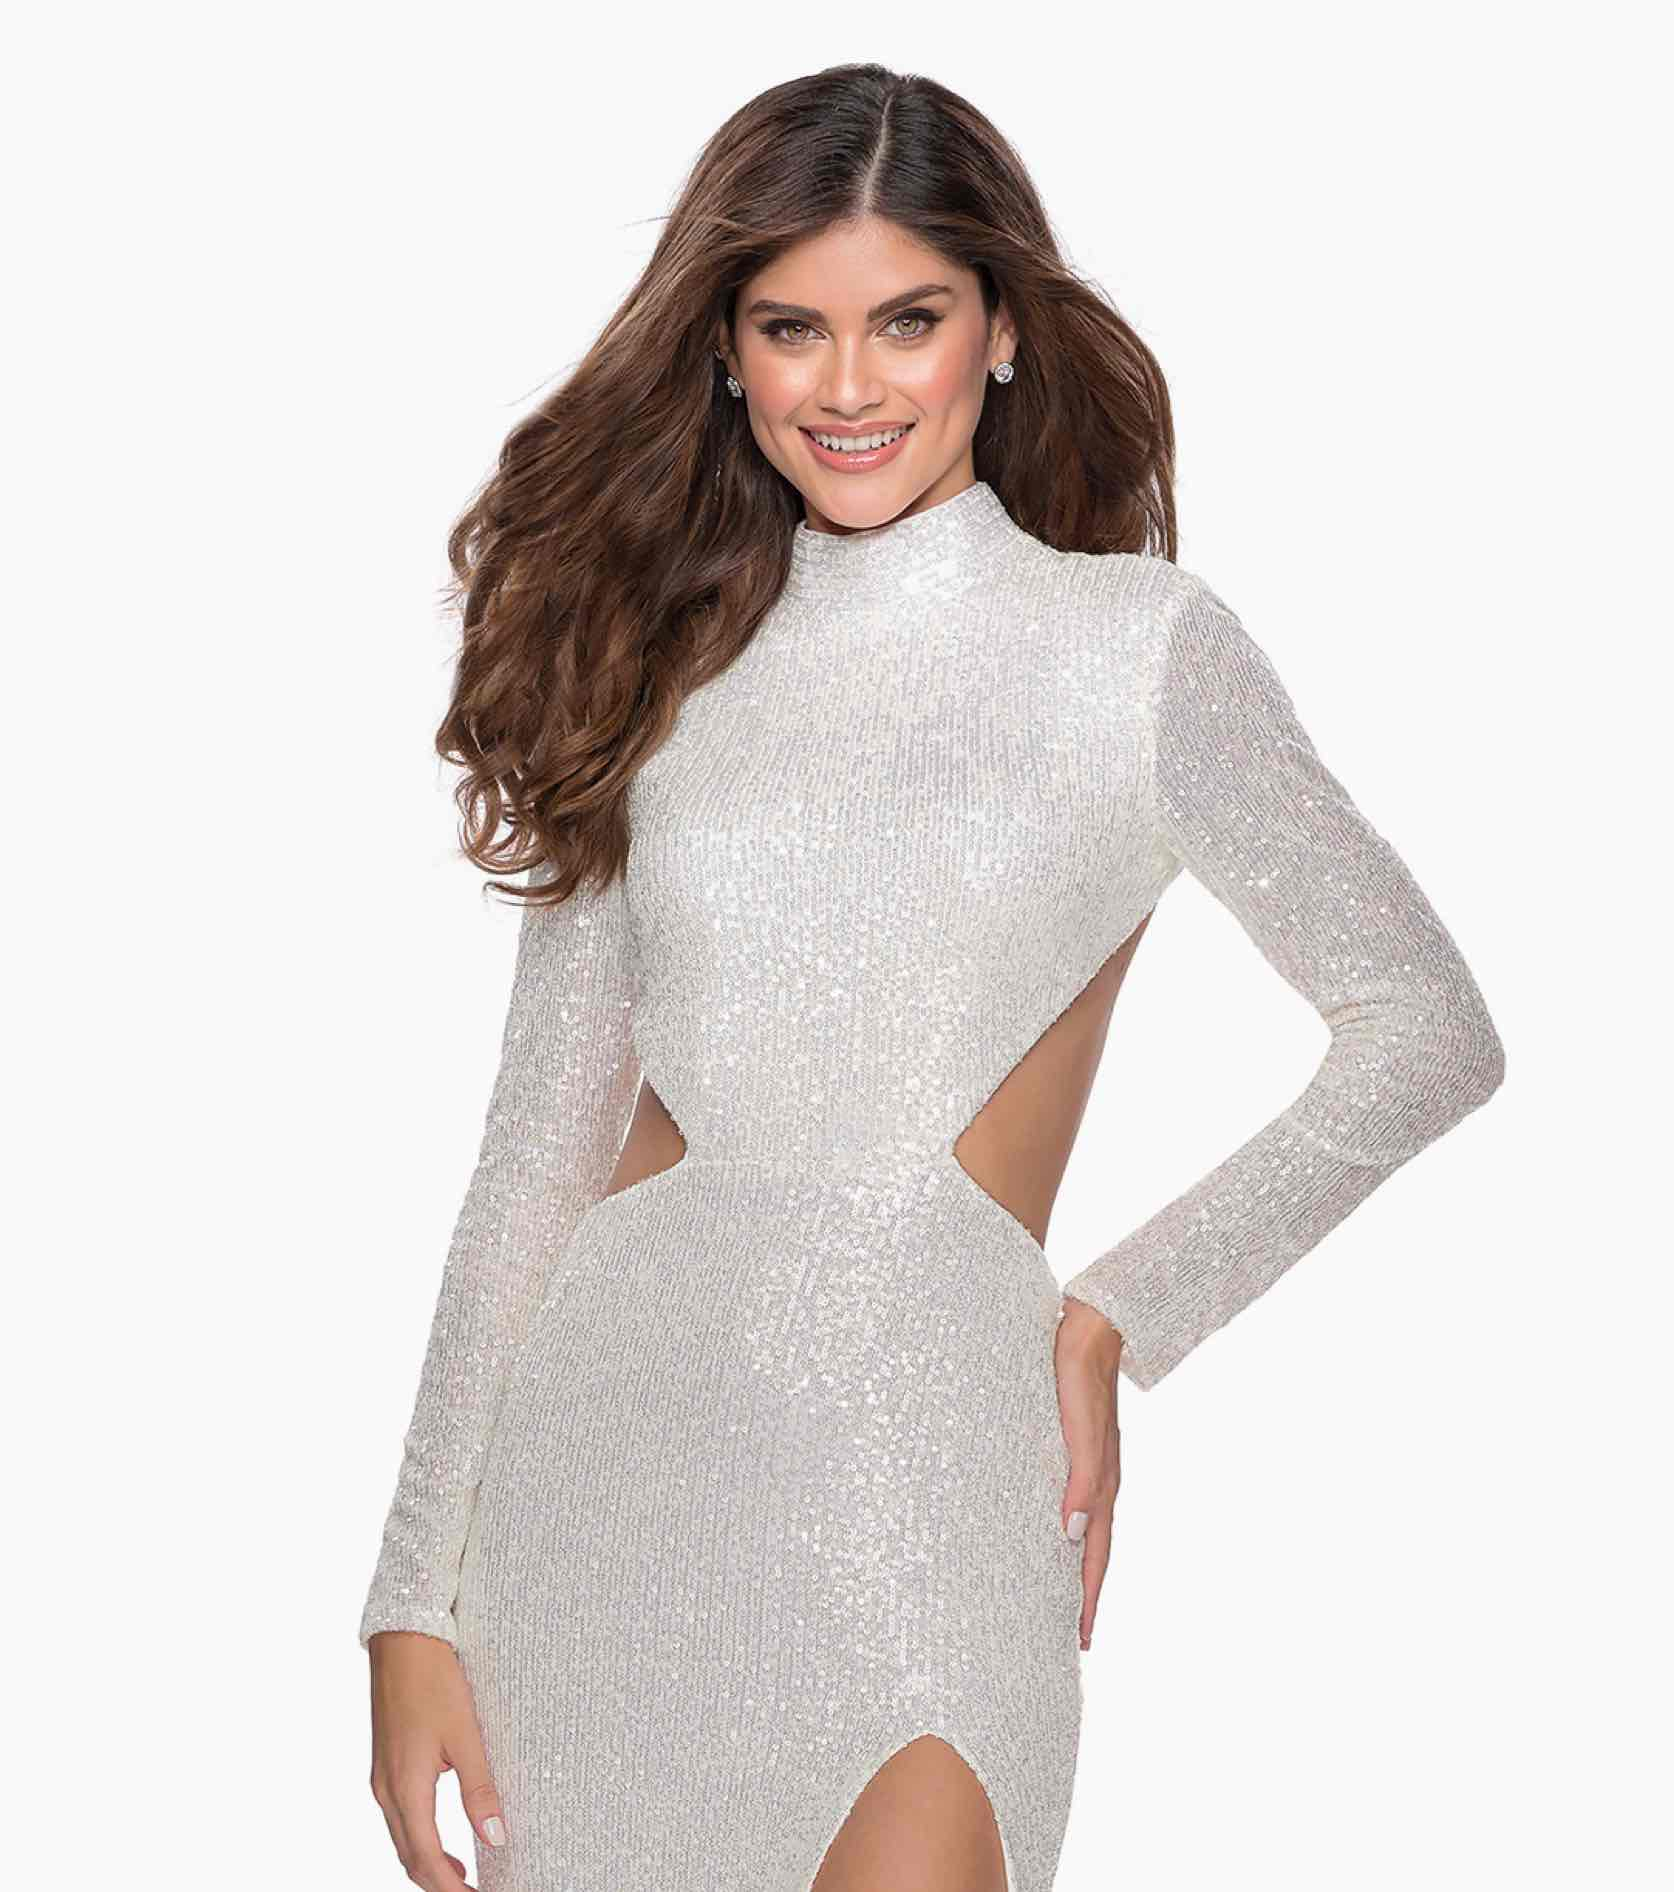 Model in sparkly white La Femme dress